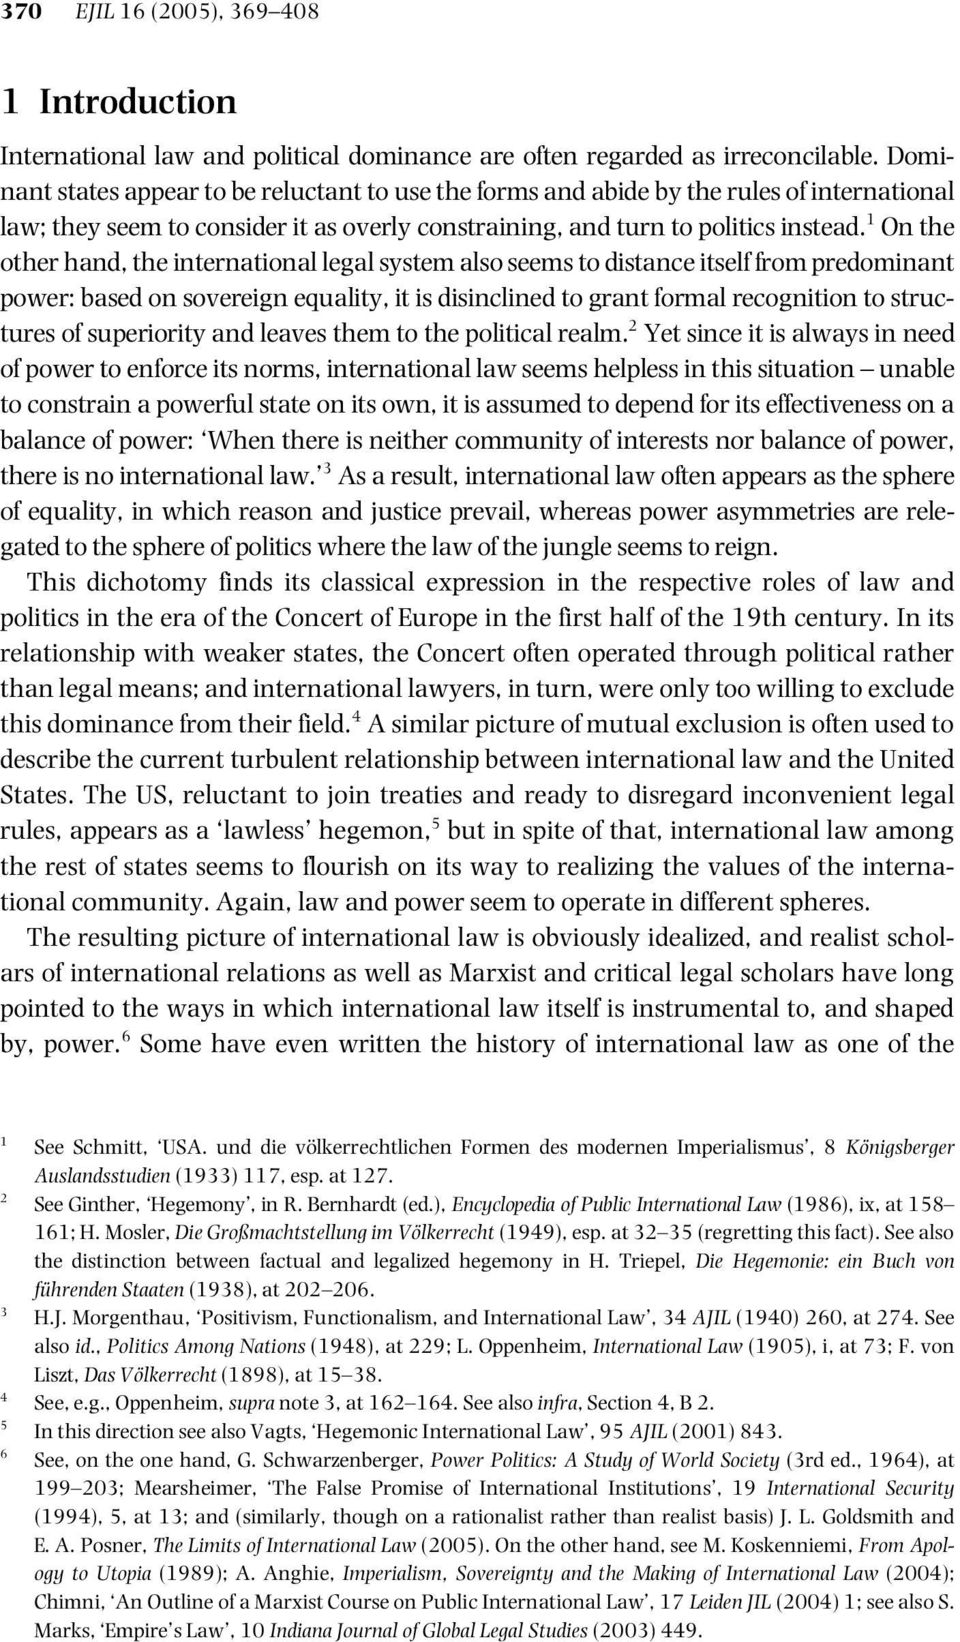 1 On the other hand, the international legal system also seems to distance itself from predominant power: based on sovereign equality, it is disinclined to grant formal recognition to structures of